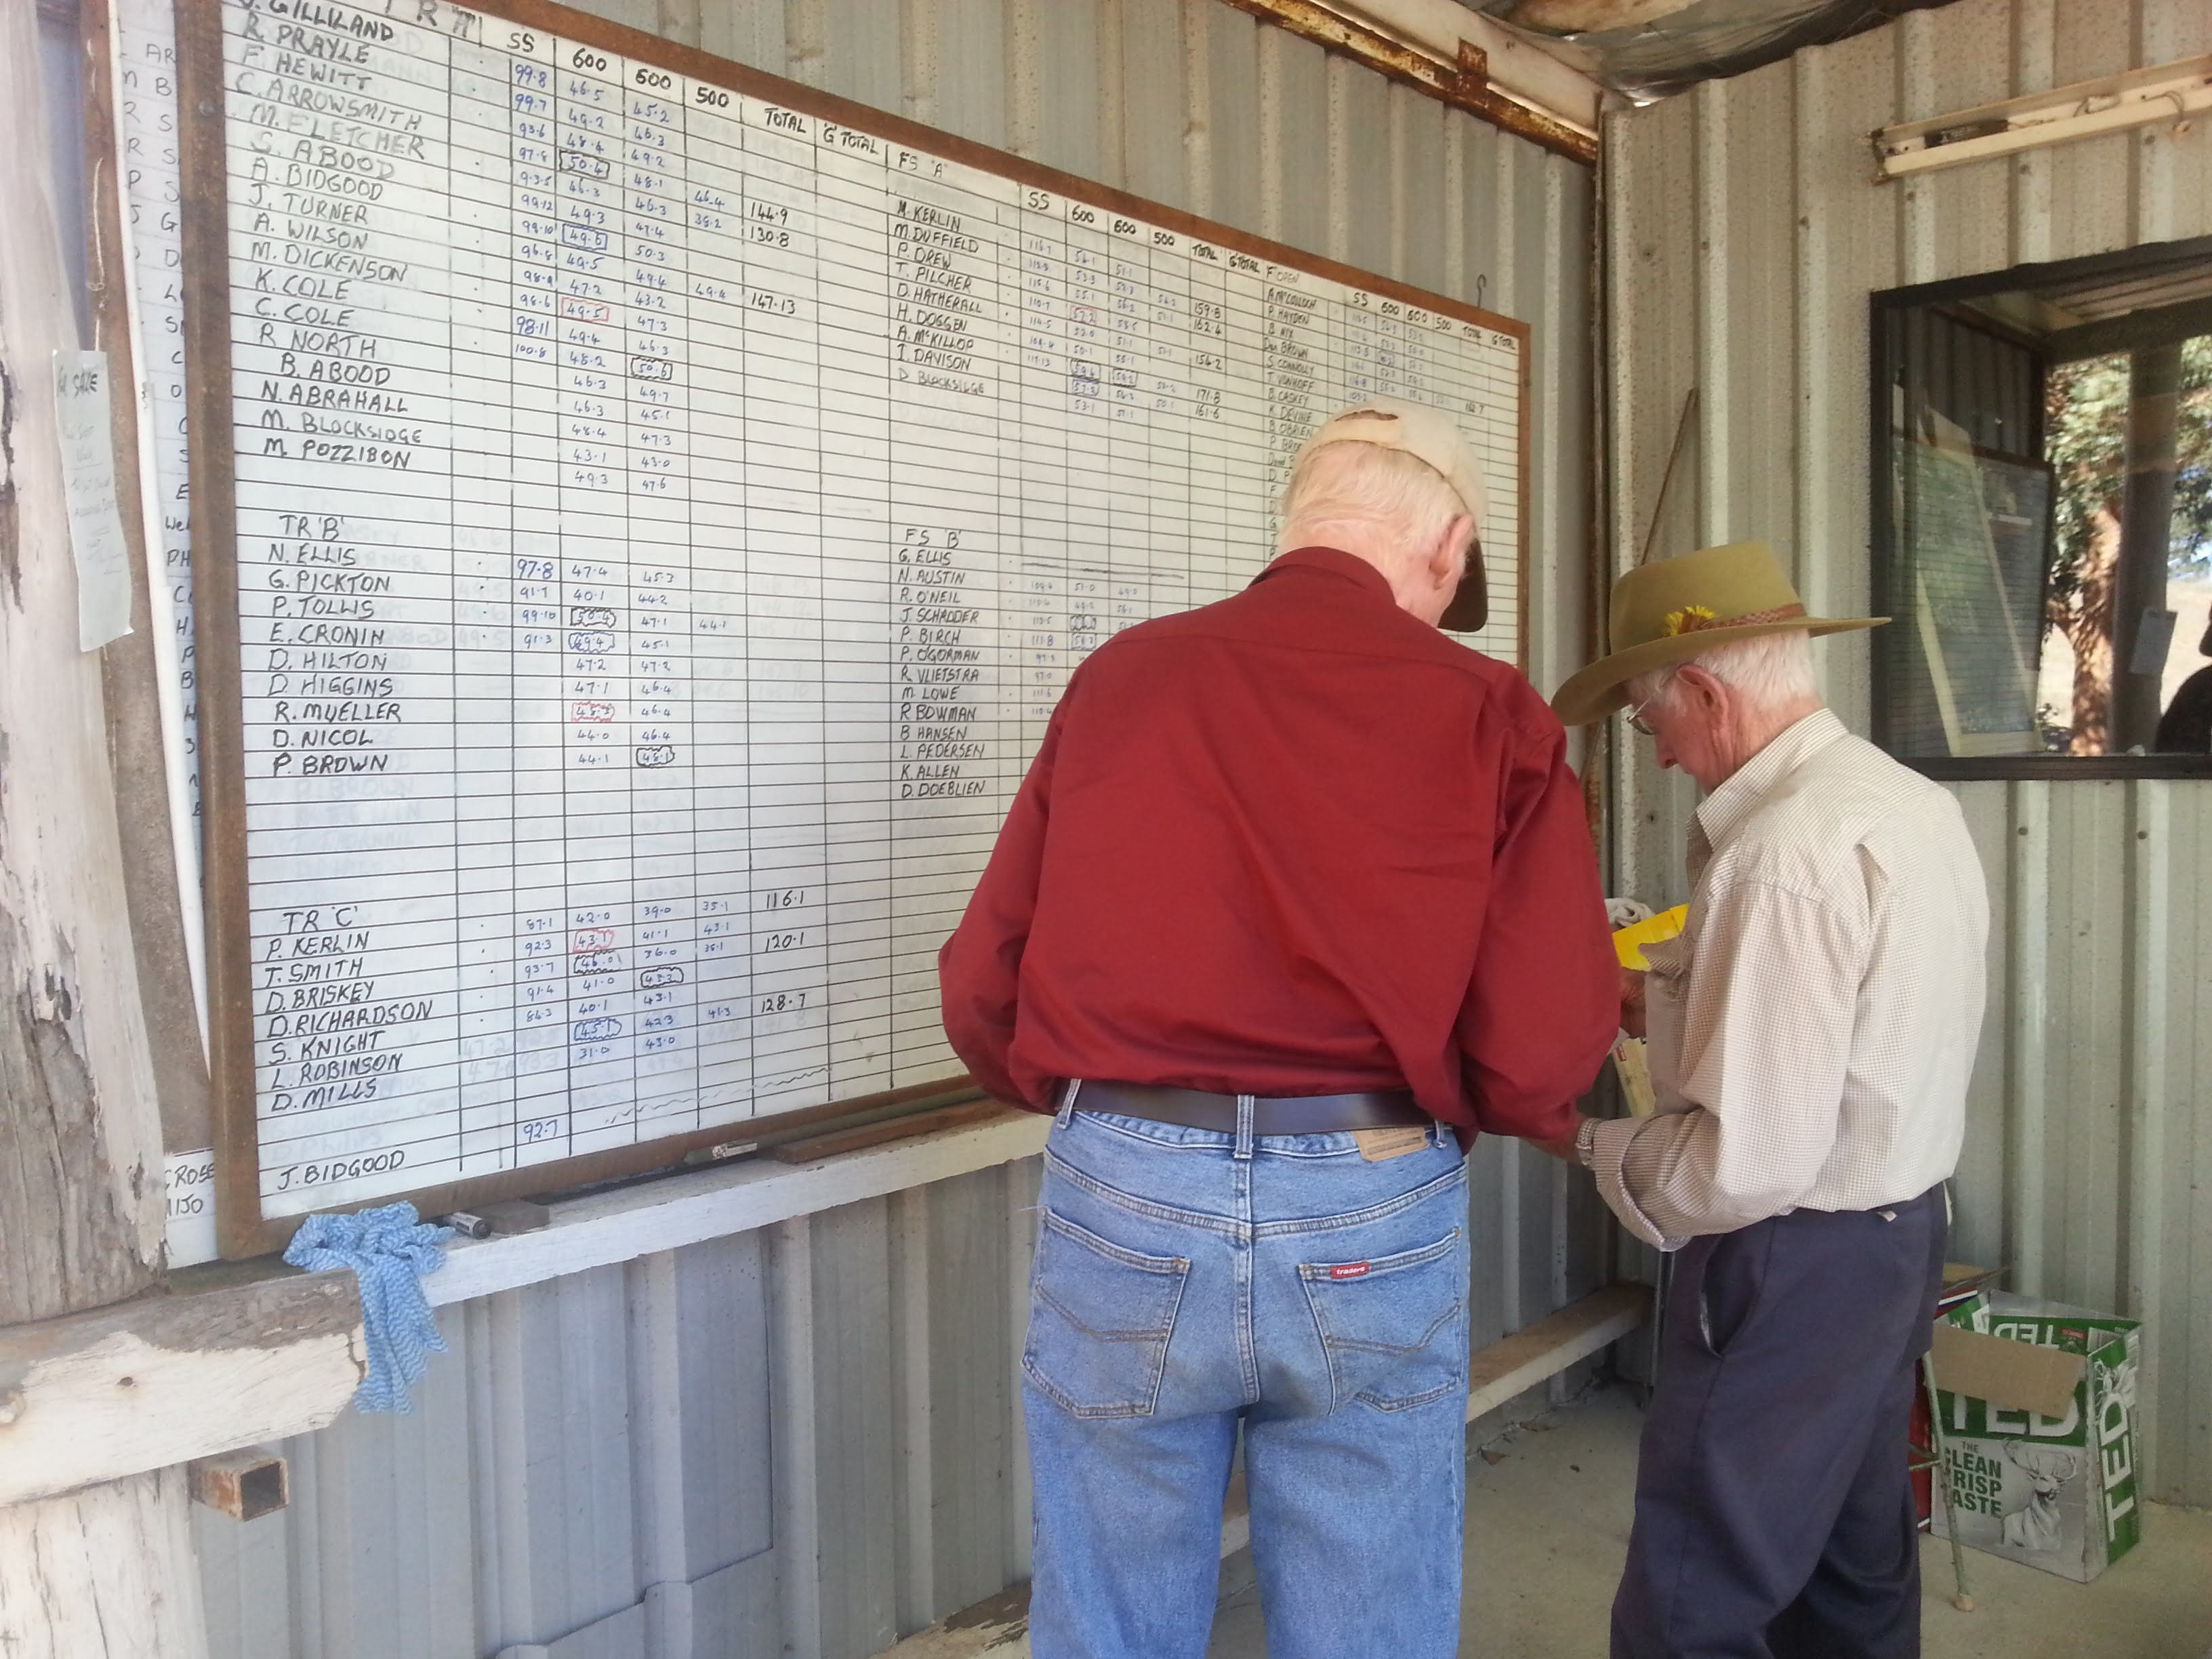 Sorting the scores